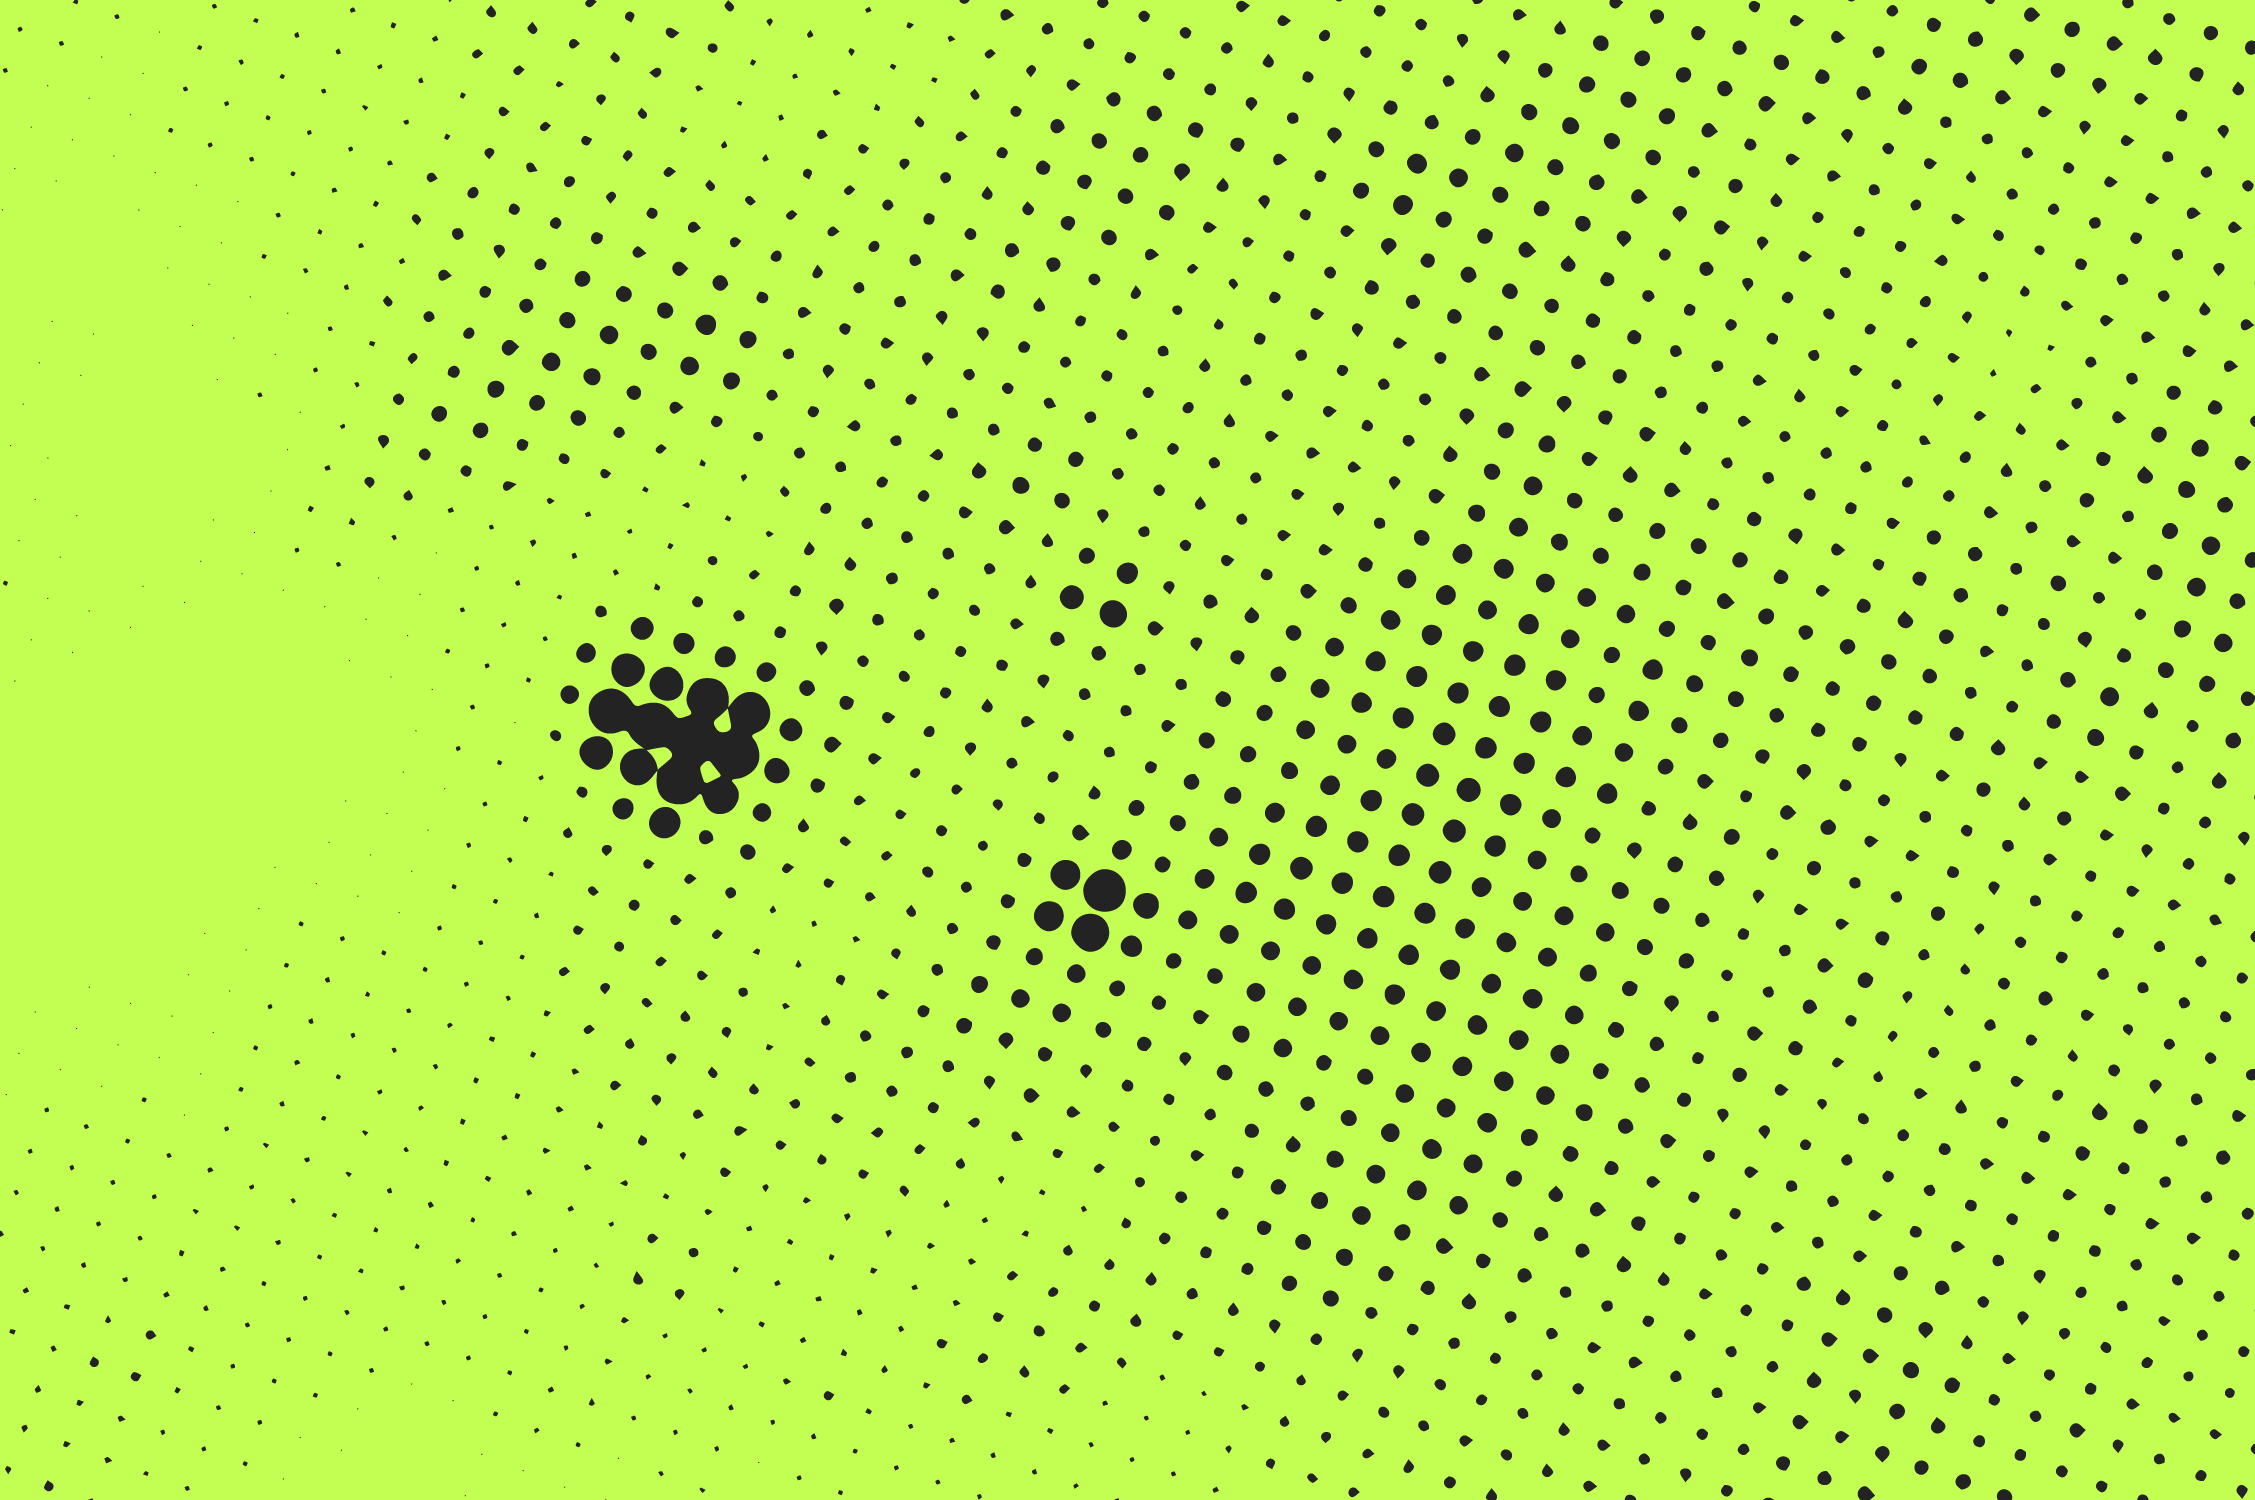 Halftone Stains Vol.#1 Texture Pack Graphic By antipixel Image 8